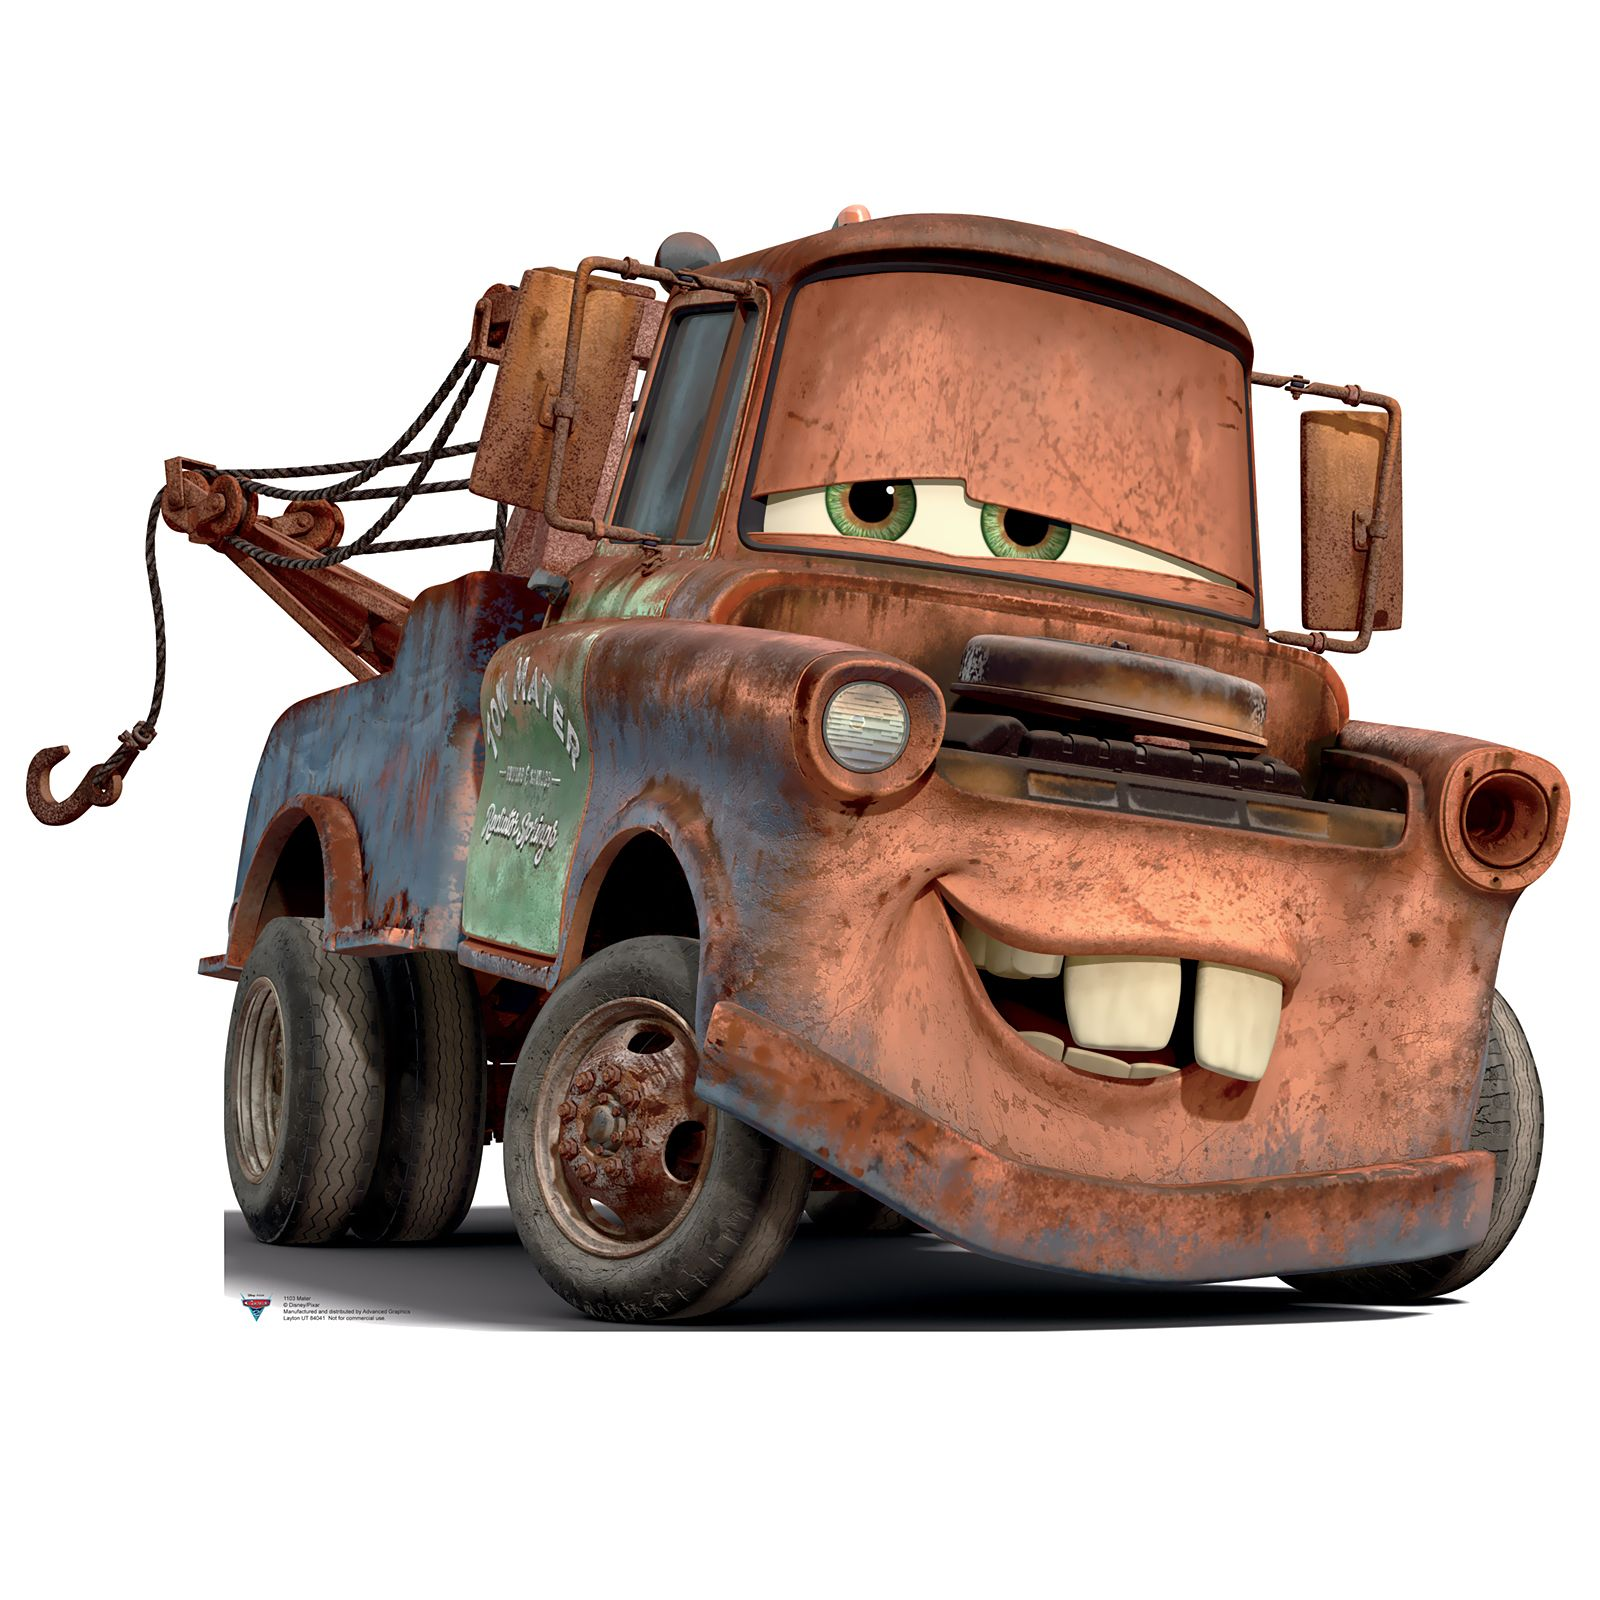 Coloring cars 2 games - Cars 2 Party Backdrop Coloring Pages Home Disney S Cars 2 Mater Standup